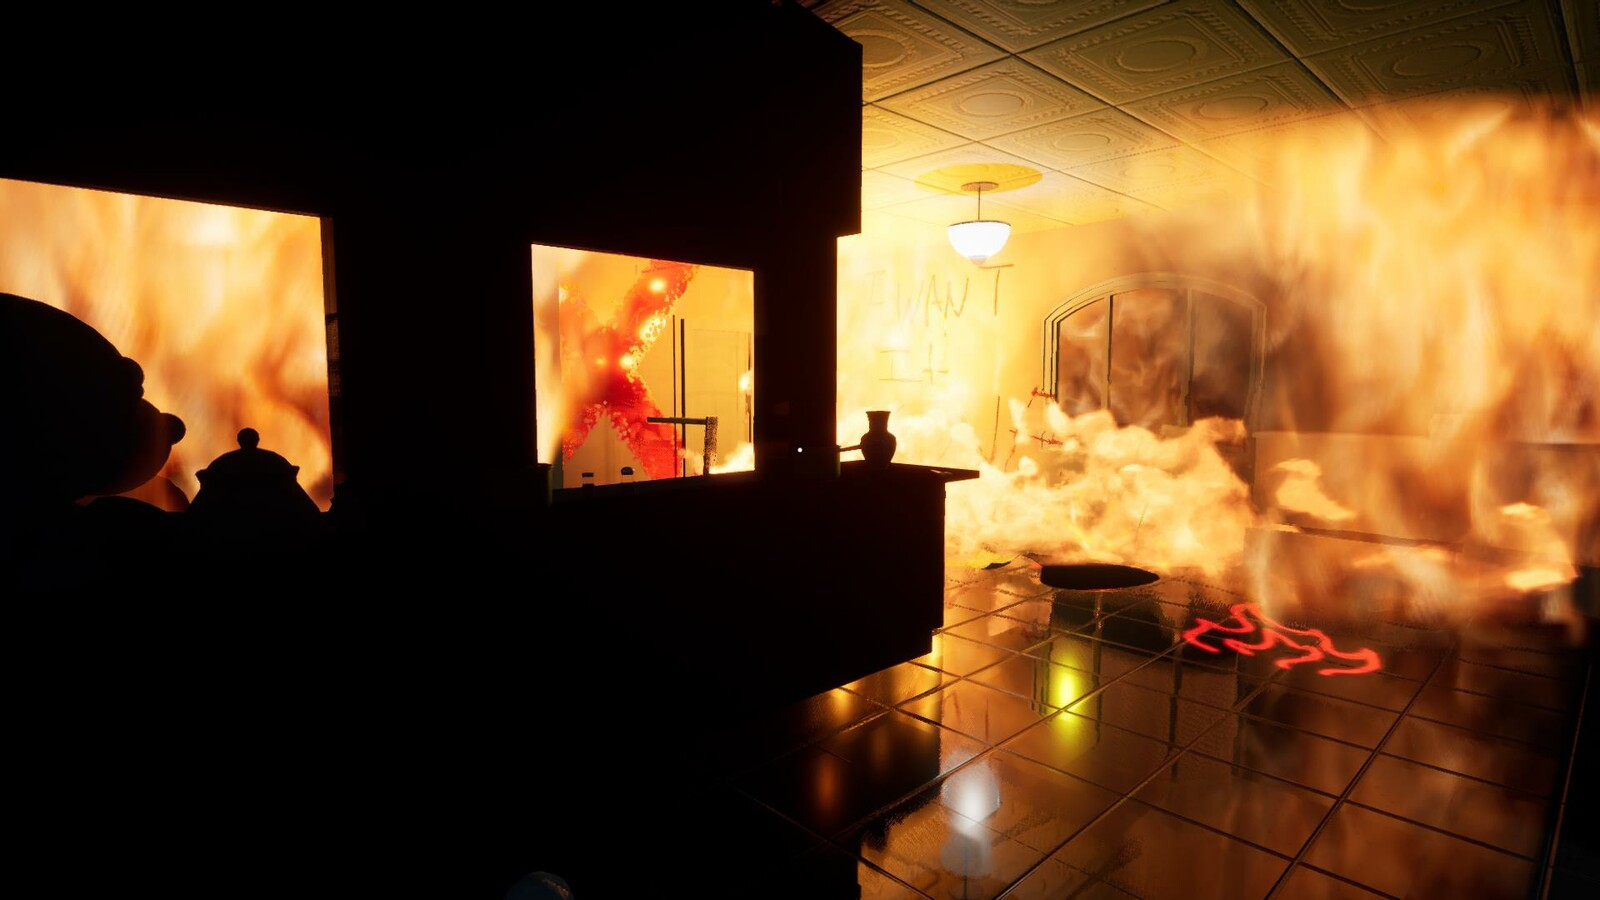 the player backs up and the parts of the room ignite one by one